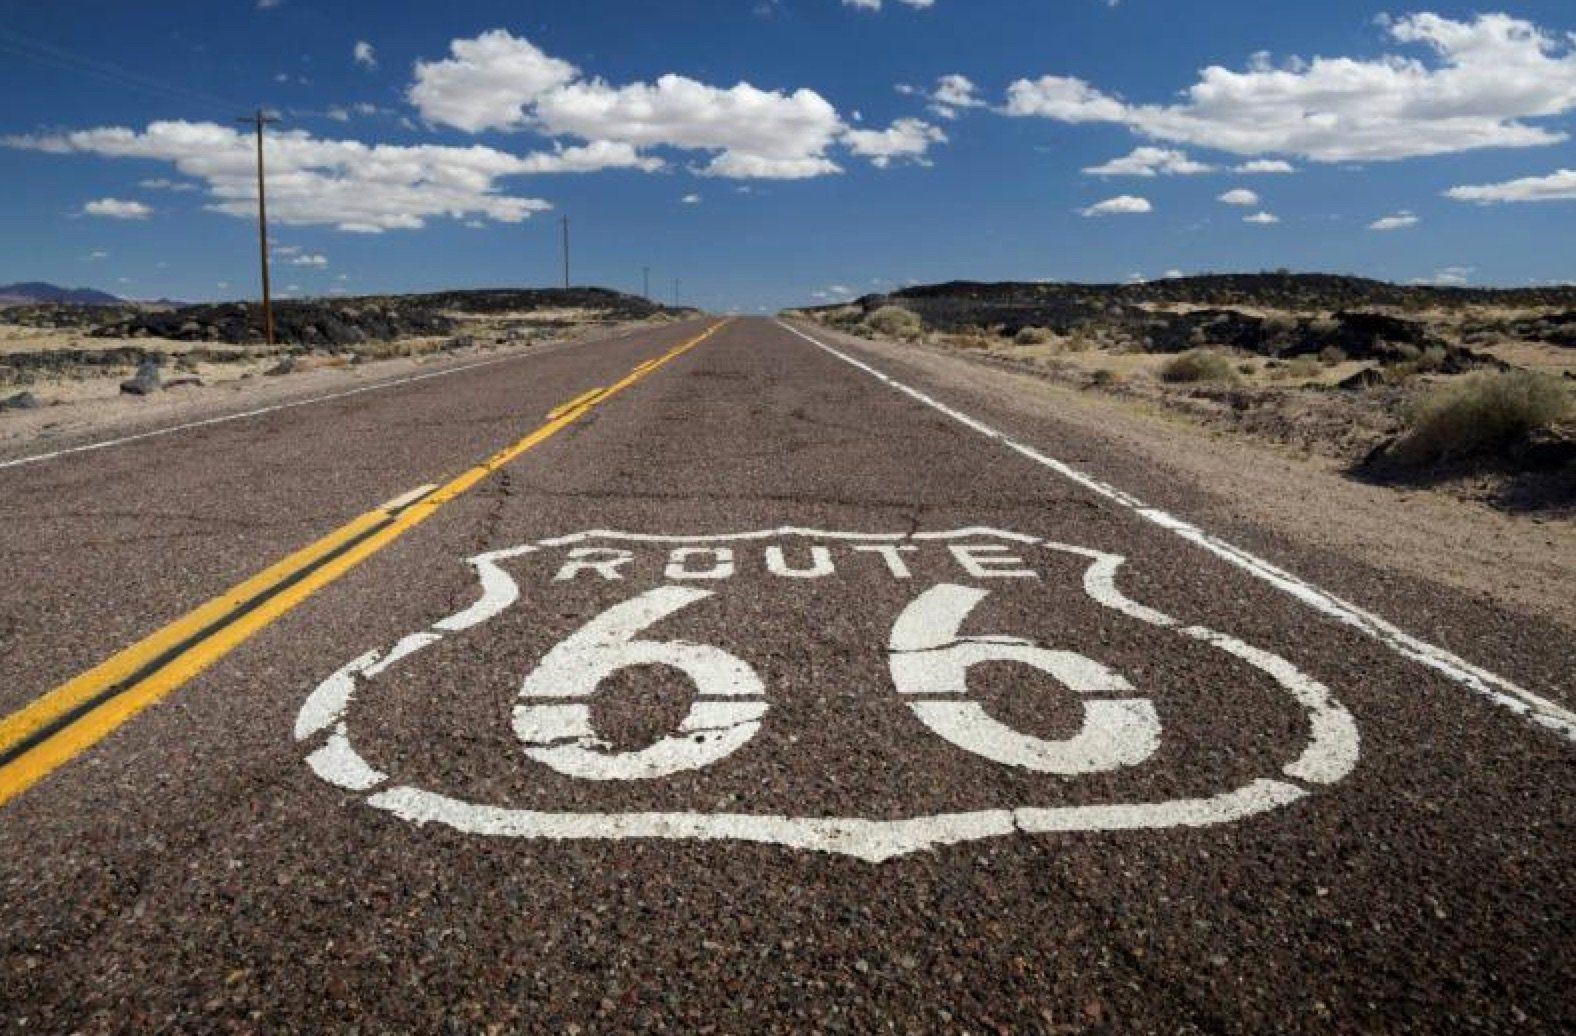 Take a ride on Route 66 and